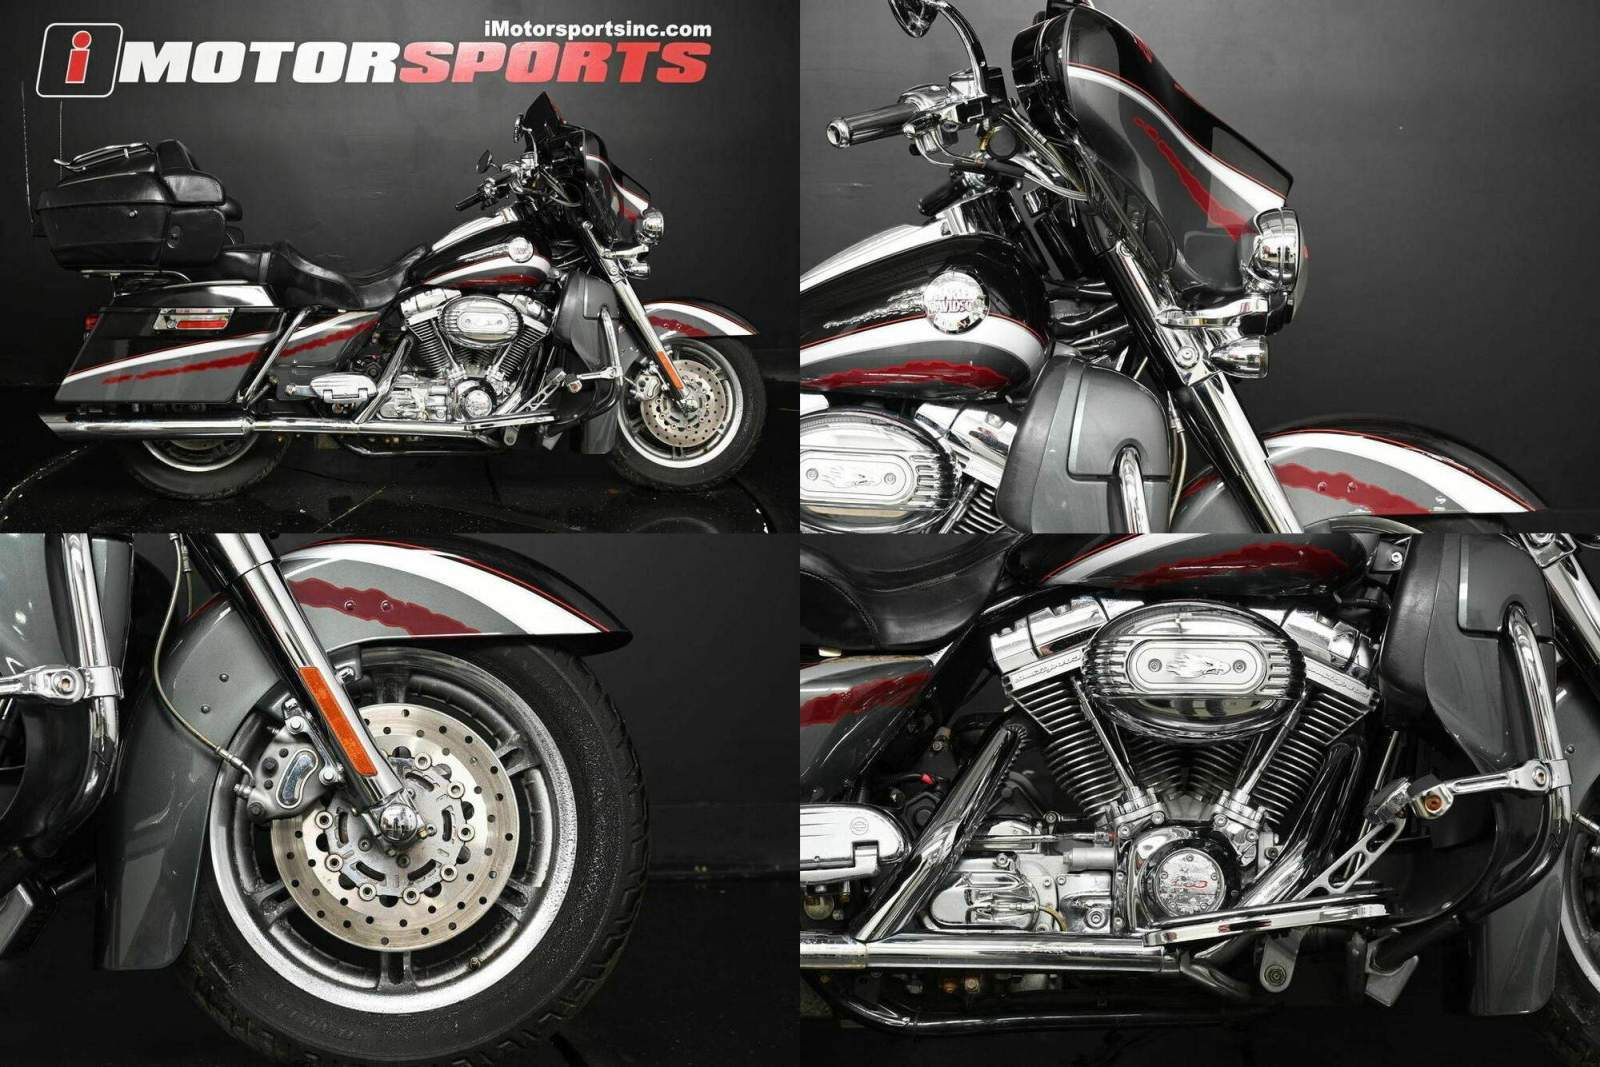 2006 Harley Davidson FLHTCUSE   Ultra Classic Electra Glide Screamin' E  for sale craigslist